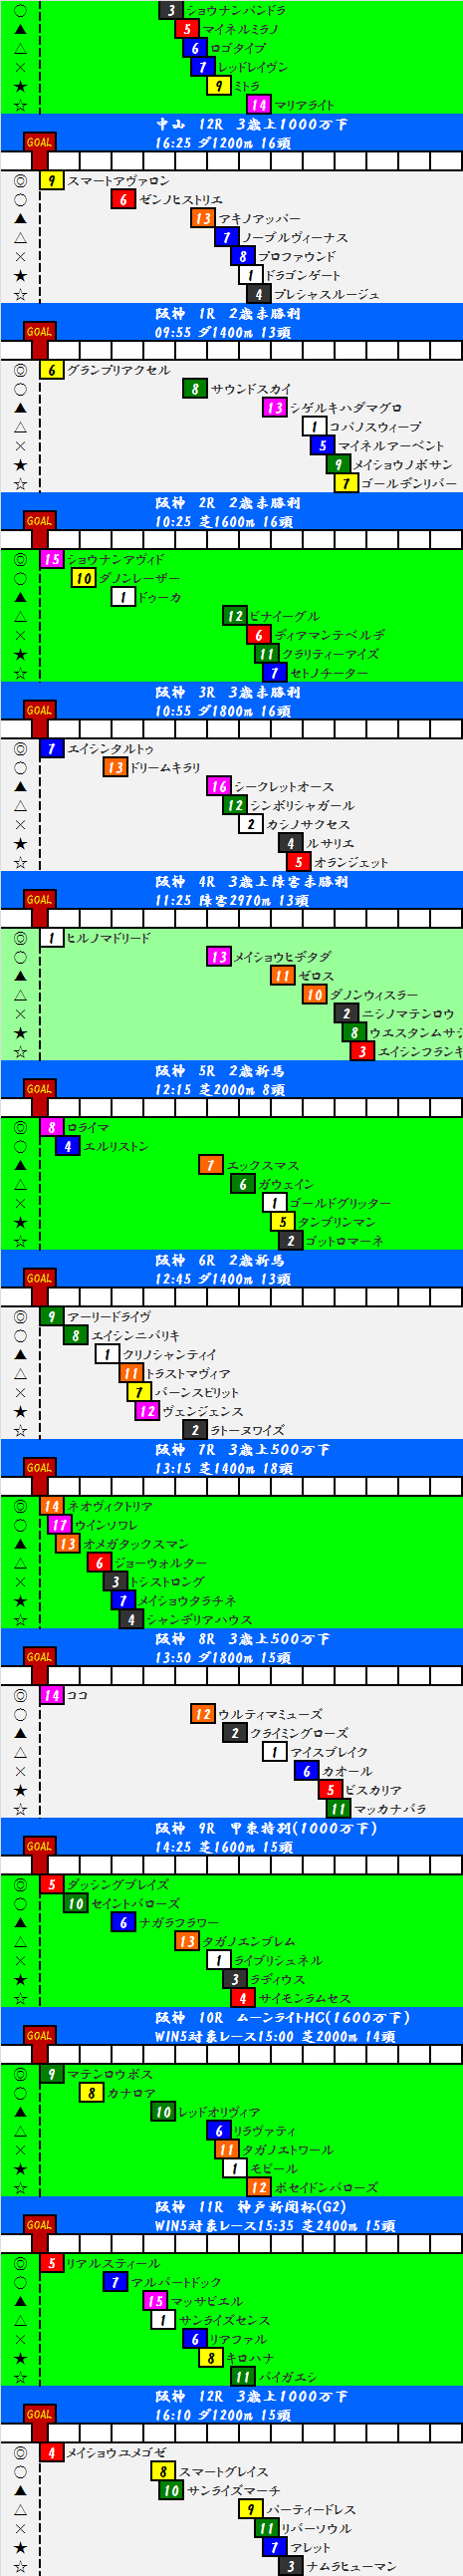 2015092702.png